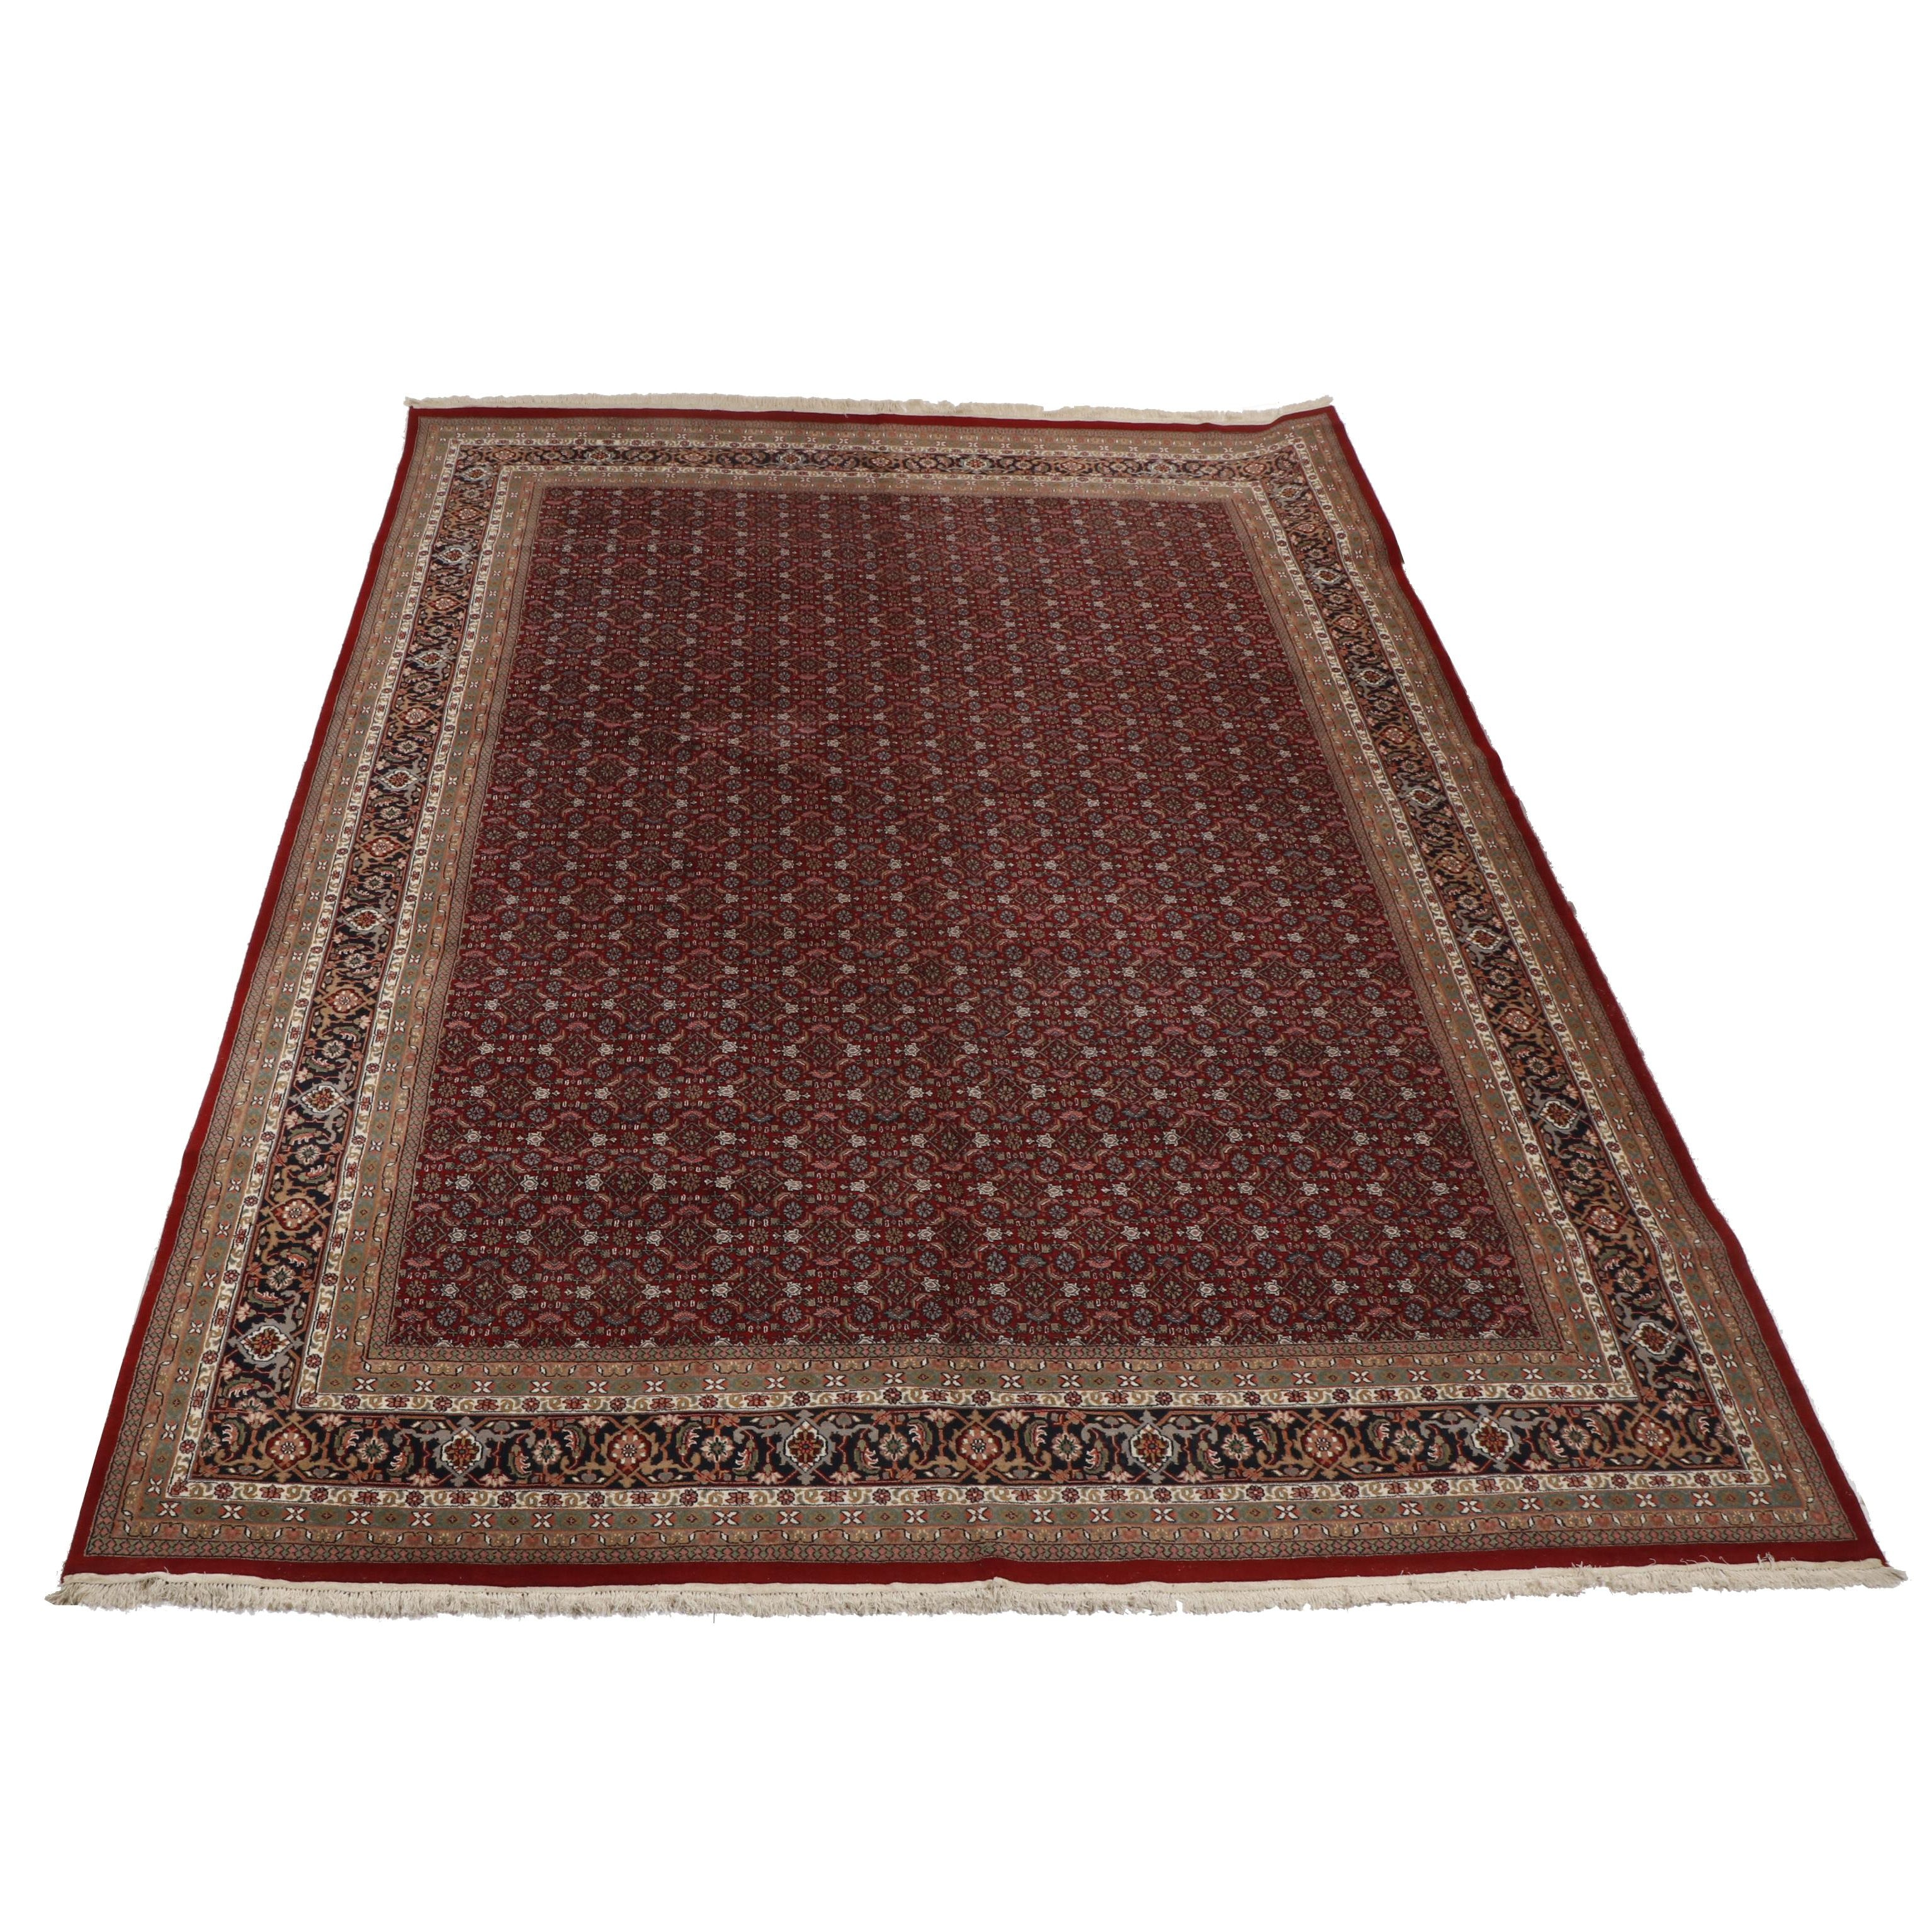 Hand-Knotted Indian Bijar Wool Palace Sized Wool Rug from Oscar Isberian